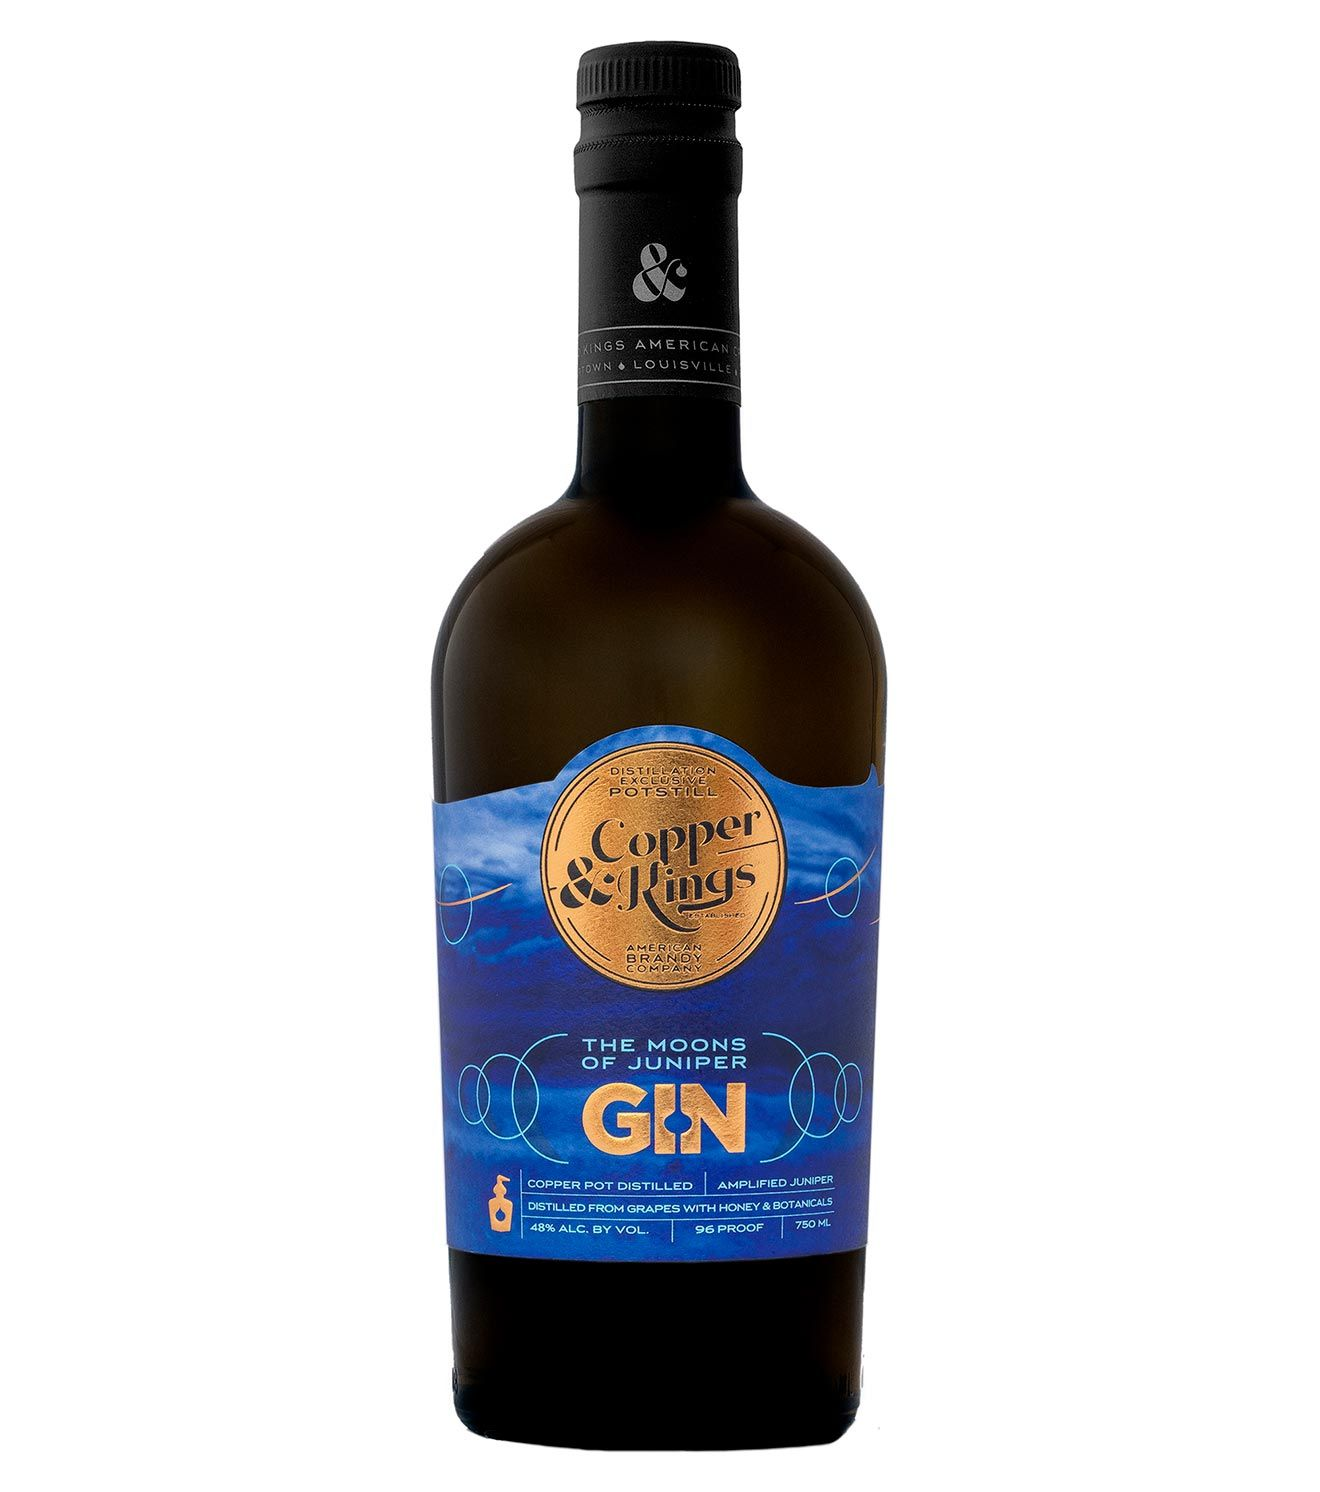 Copper kings american brandy co launches the moons of